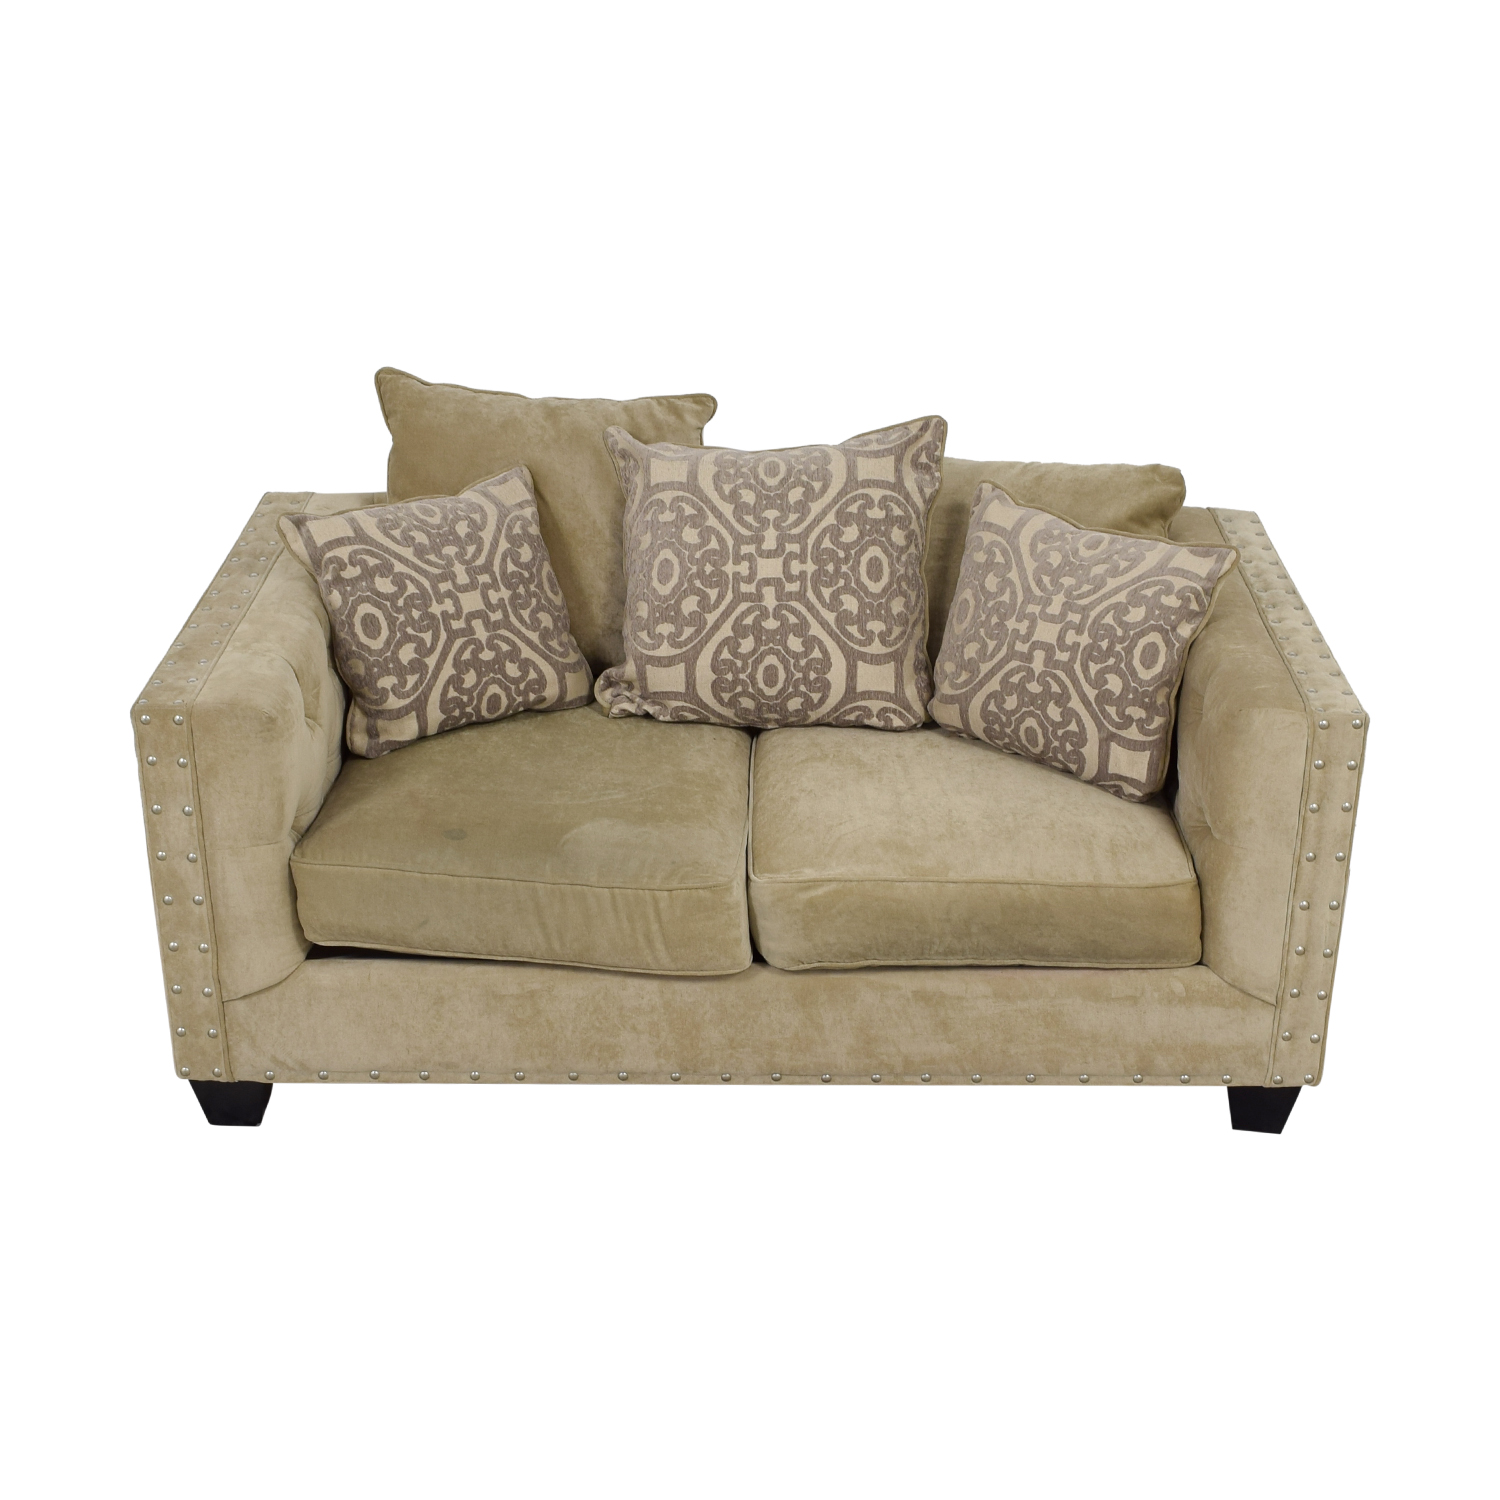 Raymour & Flanigan Cindy Crawford Beige Suede Loveseat sale